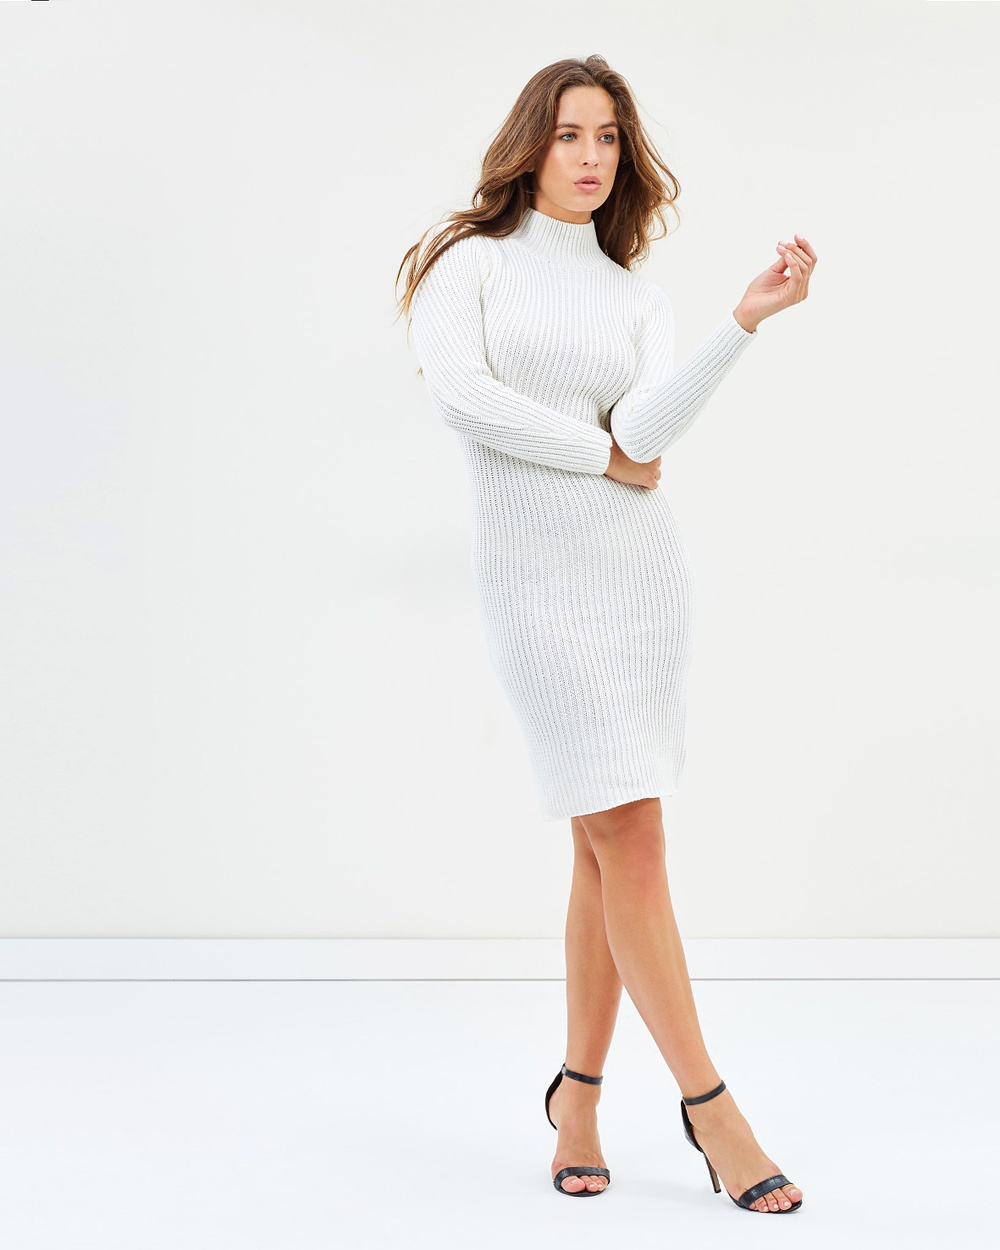 Lioness Manhattan Knit Dress Bodycon Dresses White Manhattan Knit Dress